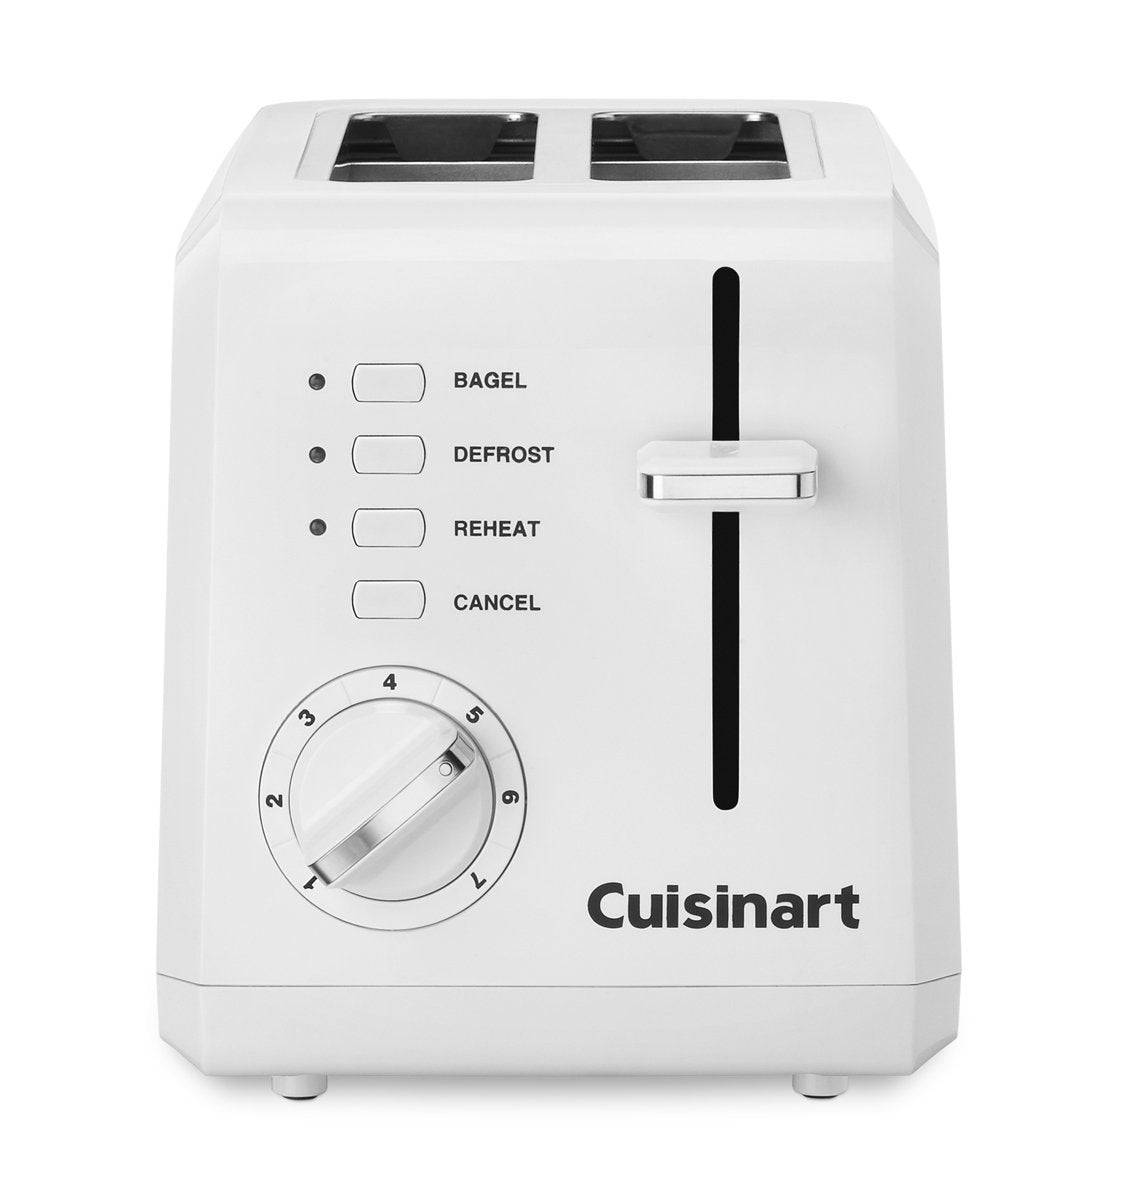 Cuisinart Cpt-122 Compact Toaster, White